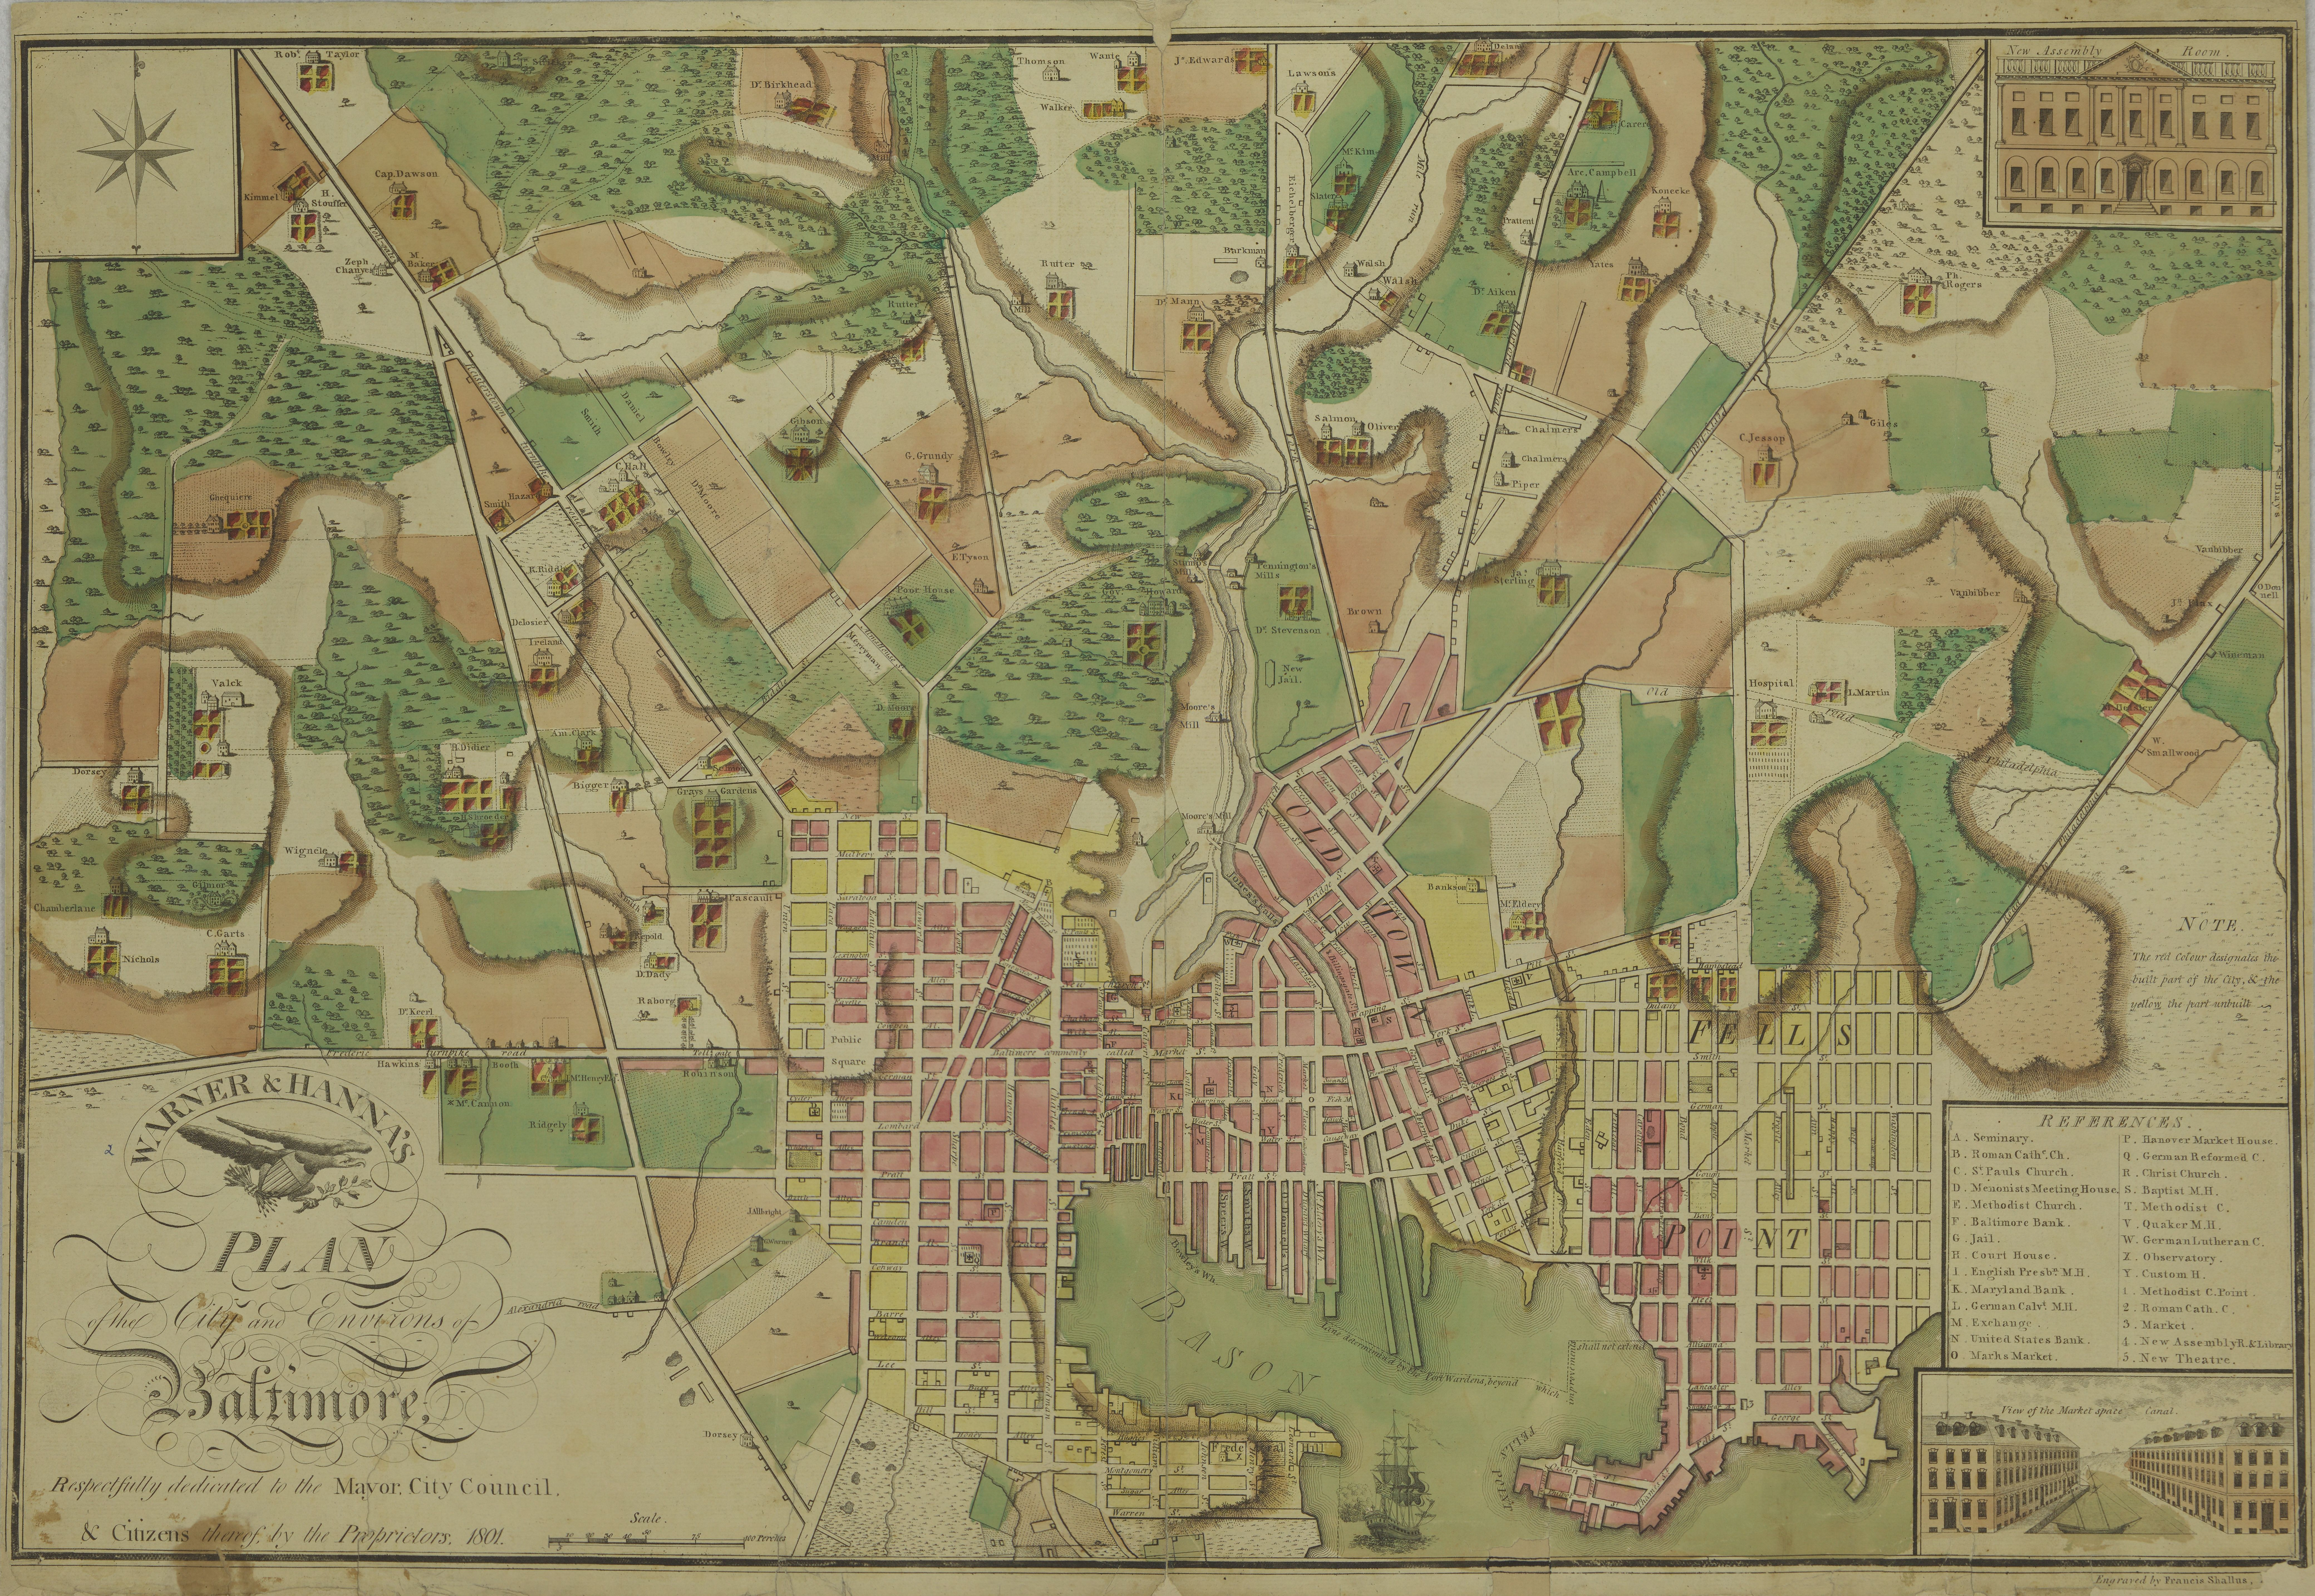 1801 Plan of the City and Environs of Baltimore